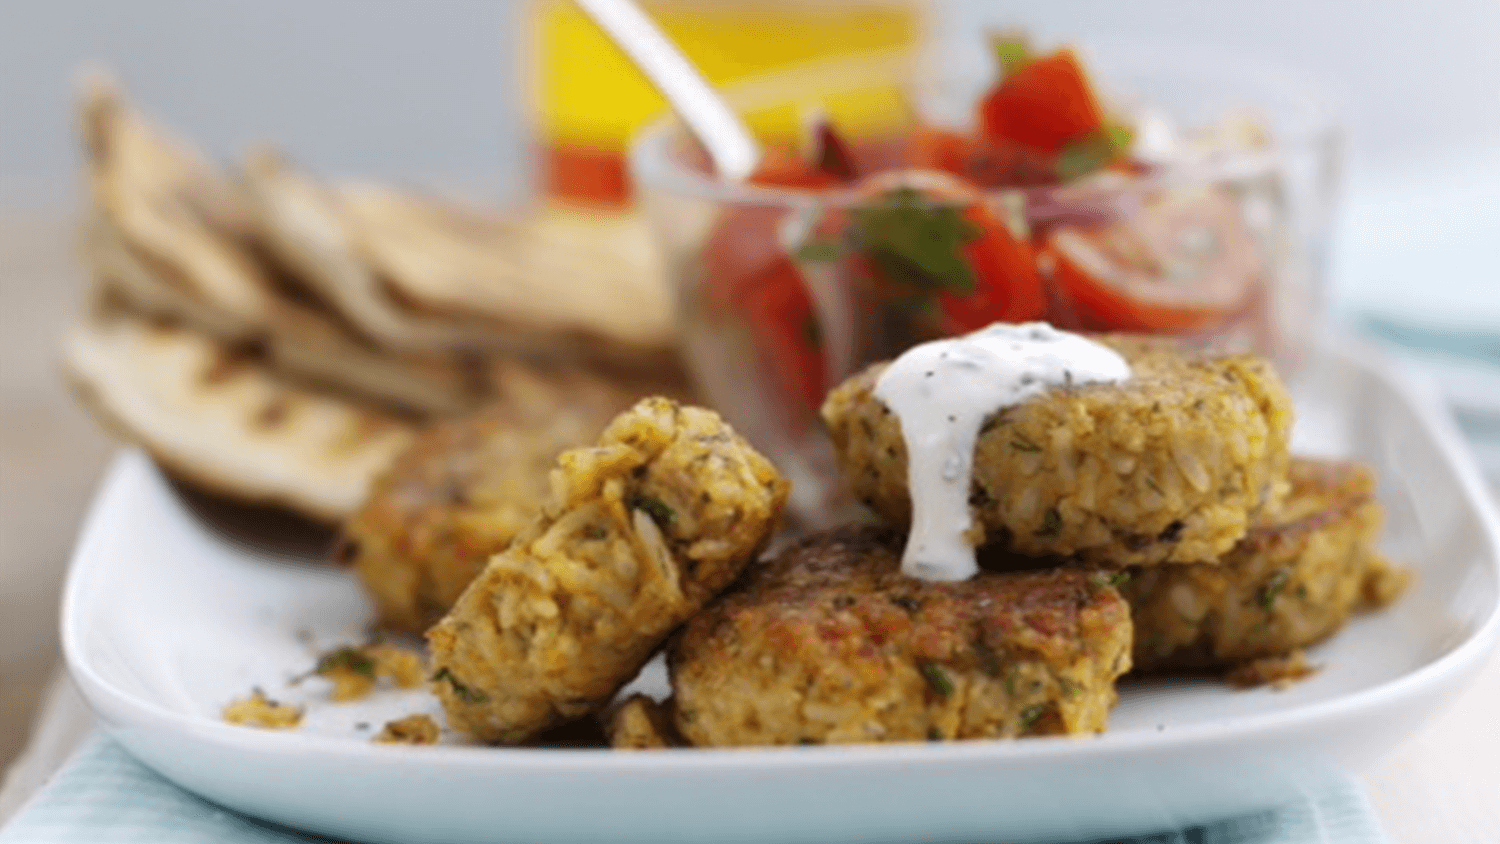 Easy Falafel Served With Tomato & Red Onion Salad